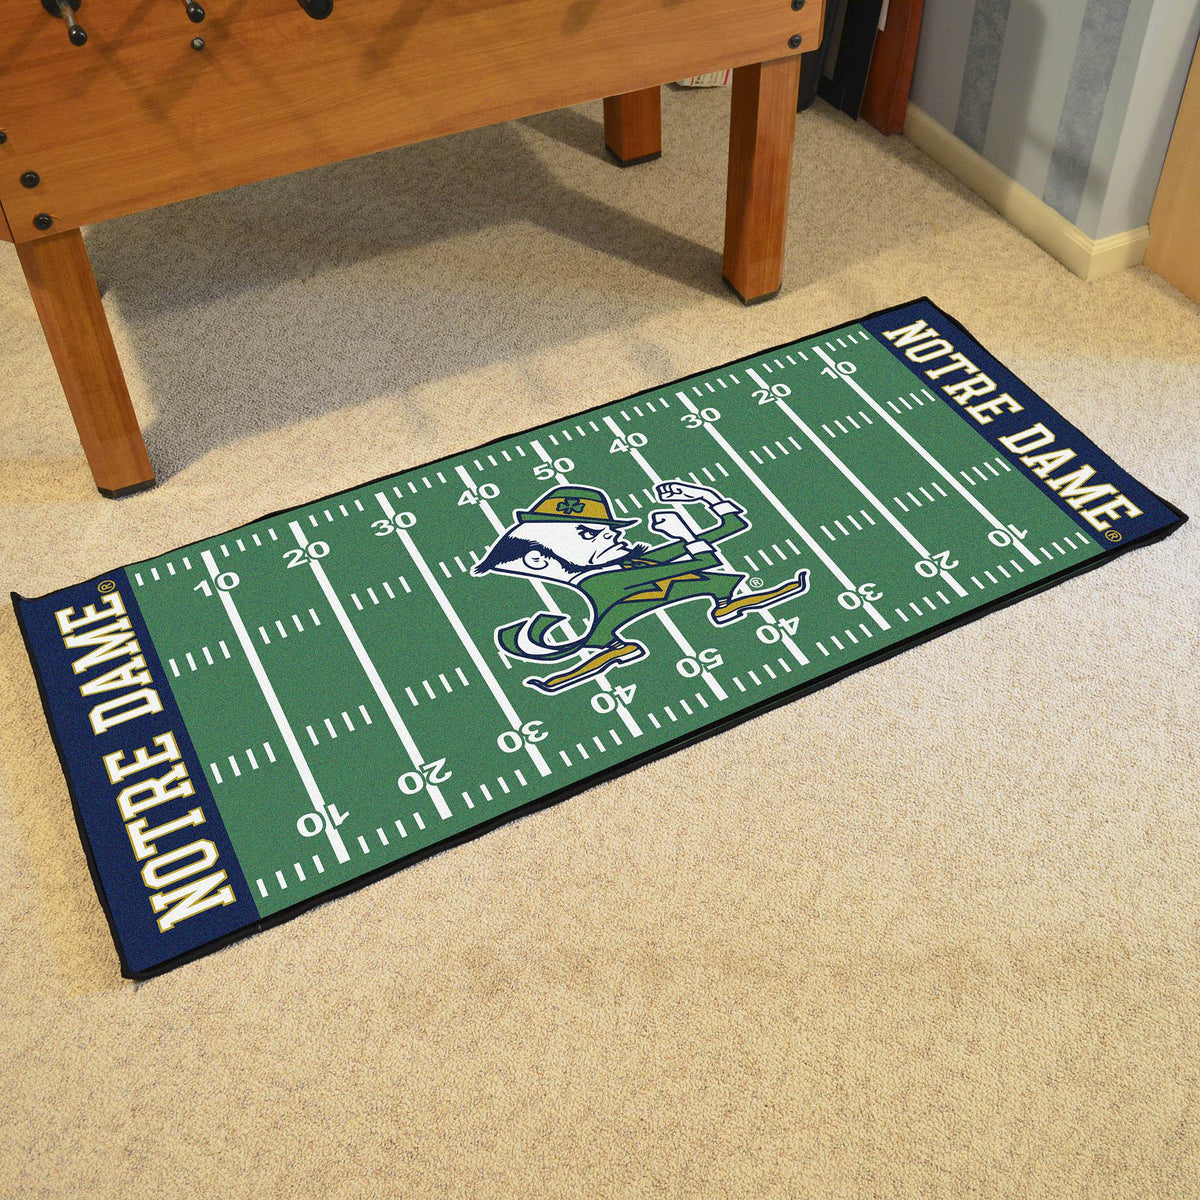 Collegiate - Football Field Runner Collegiate Mats, Rectangular Mats, Football Field Runner, Collegiate, Home Fan Mats Notre Dame